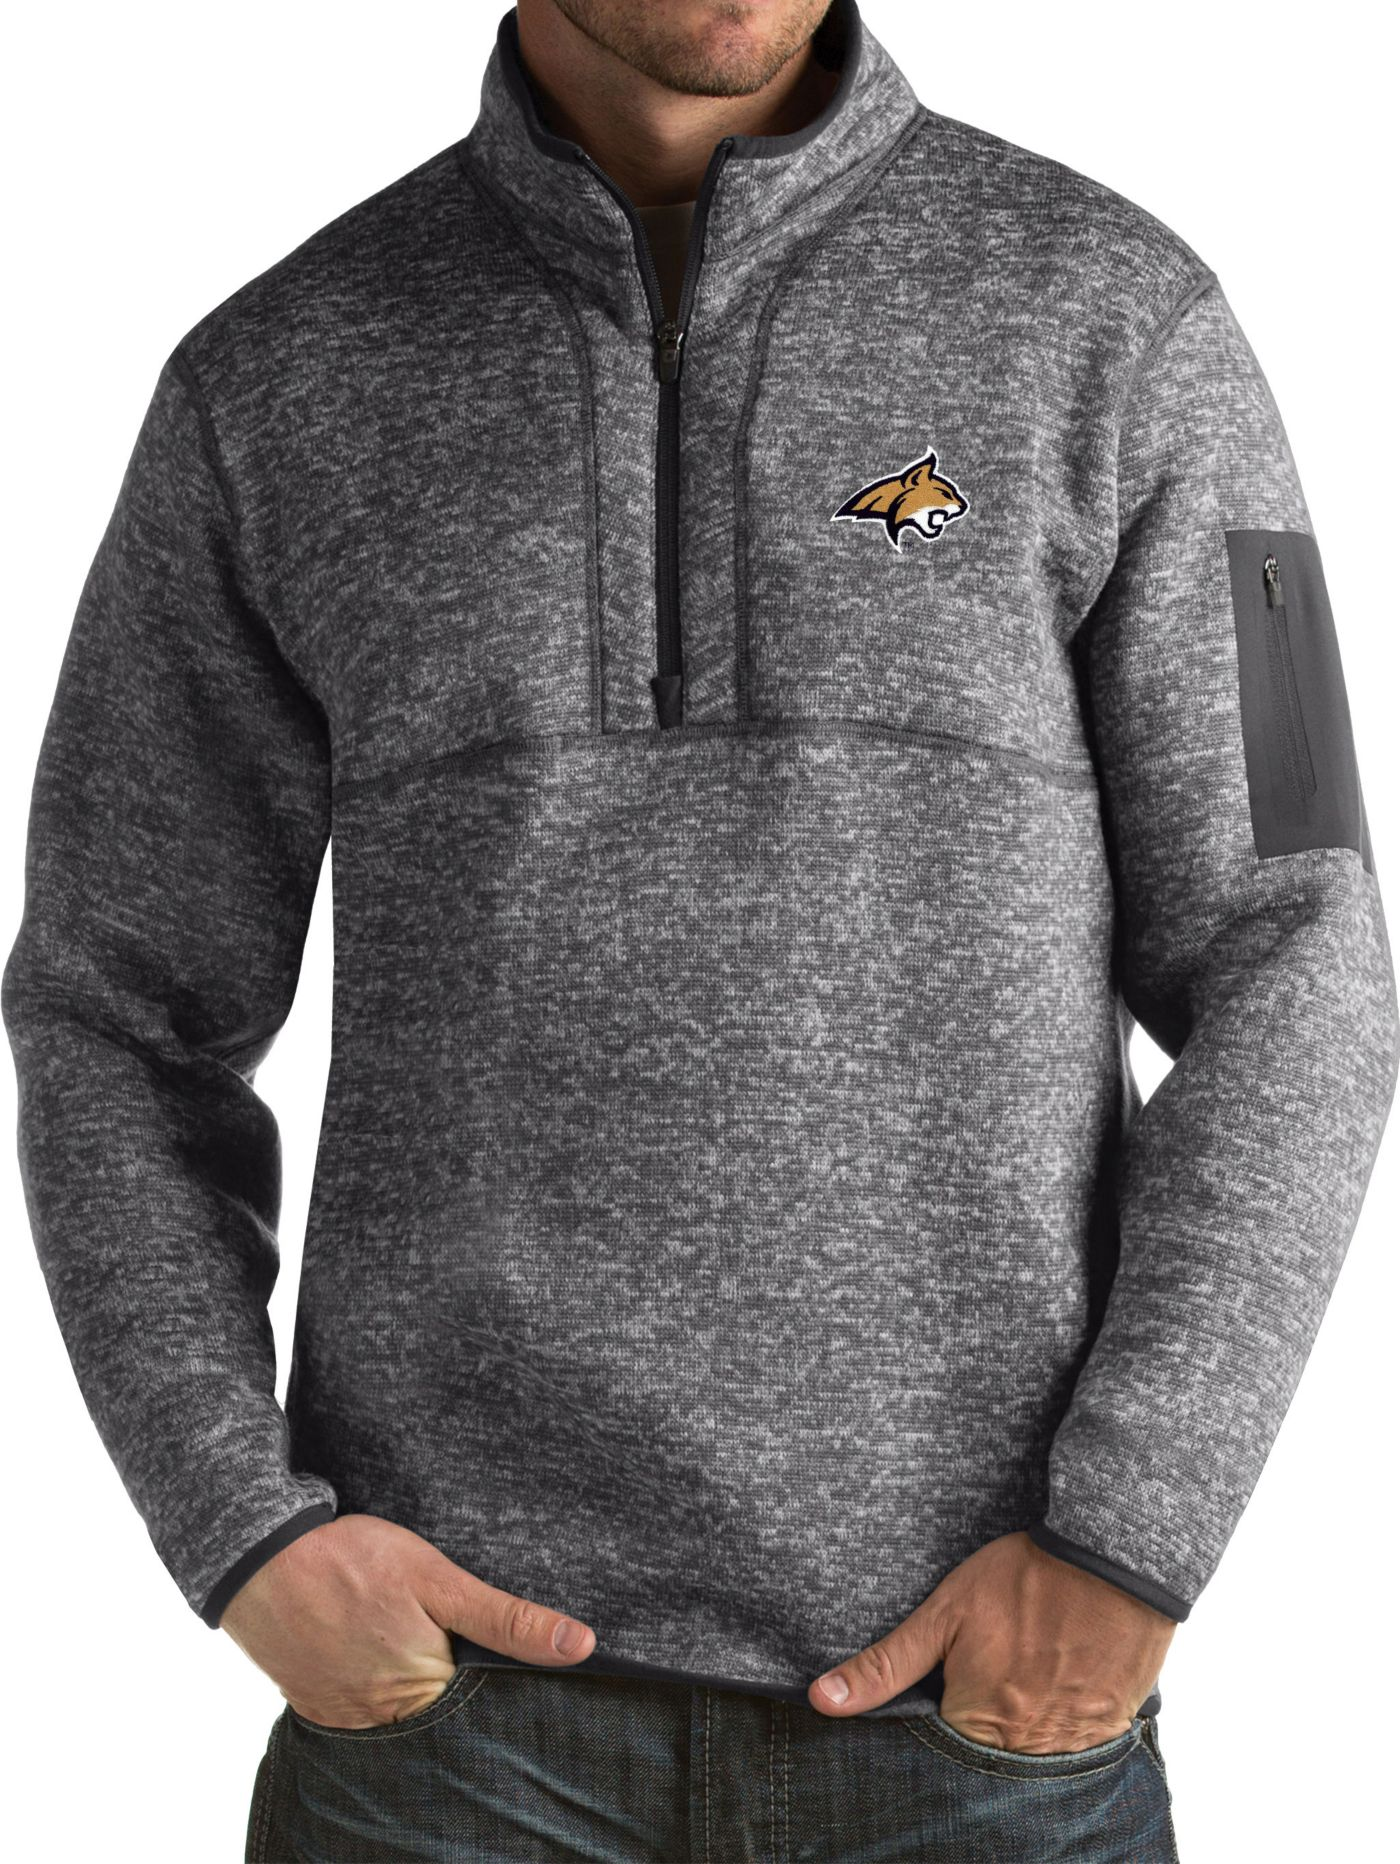 Antigua Men's Montana State Bobcats Grey Fortune Pullover Jacket